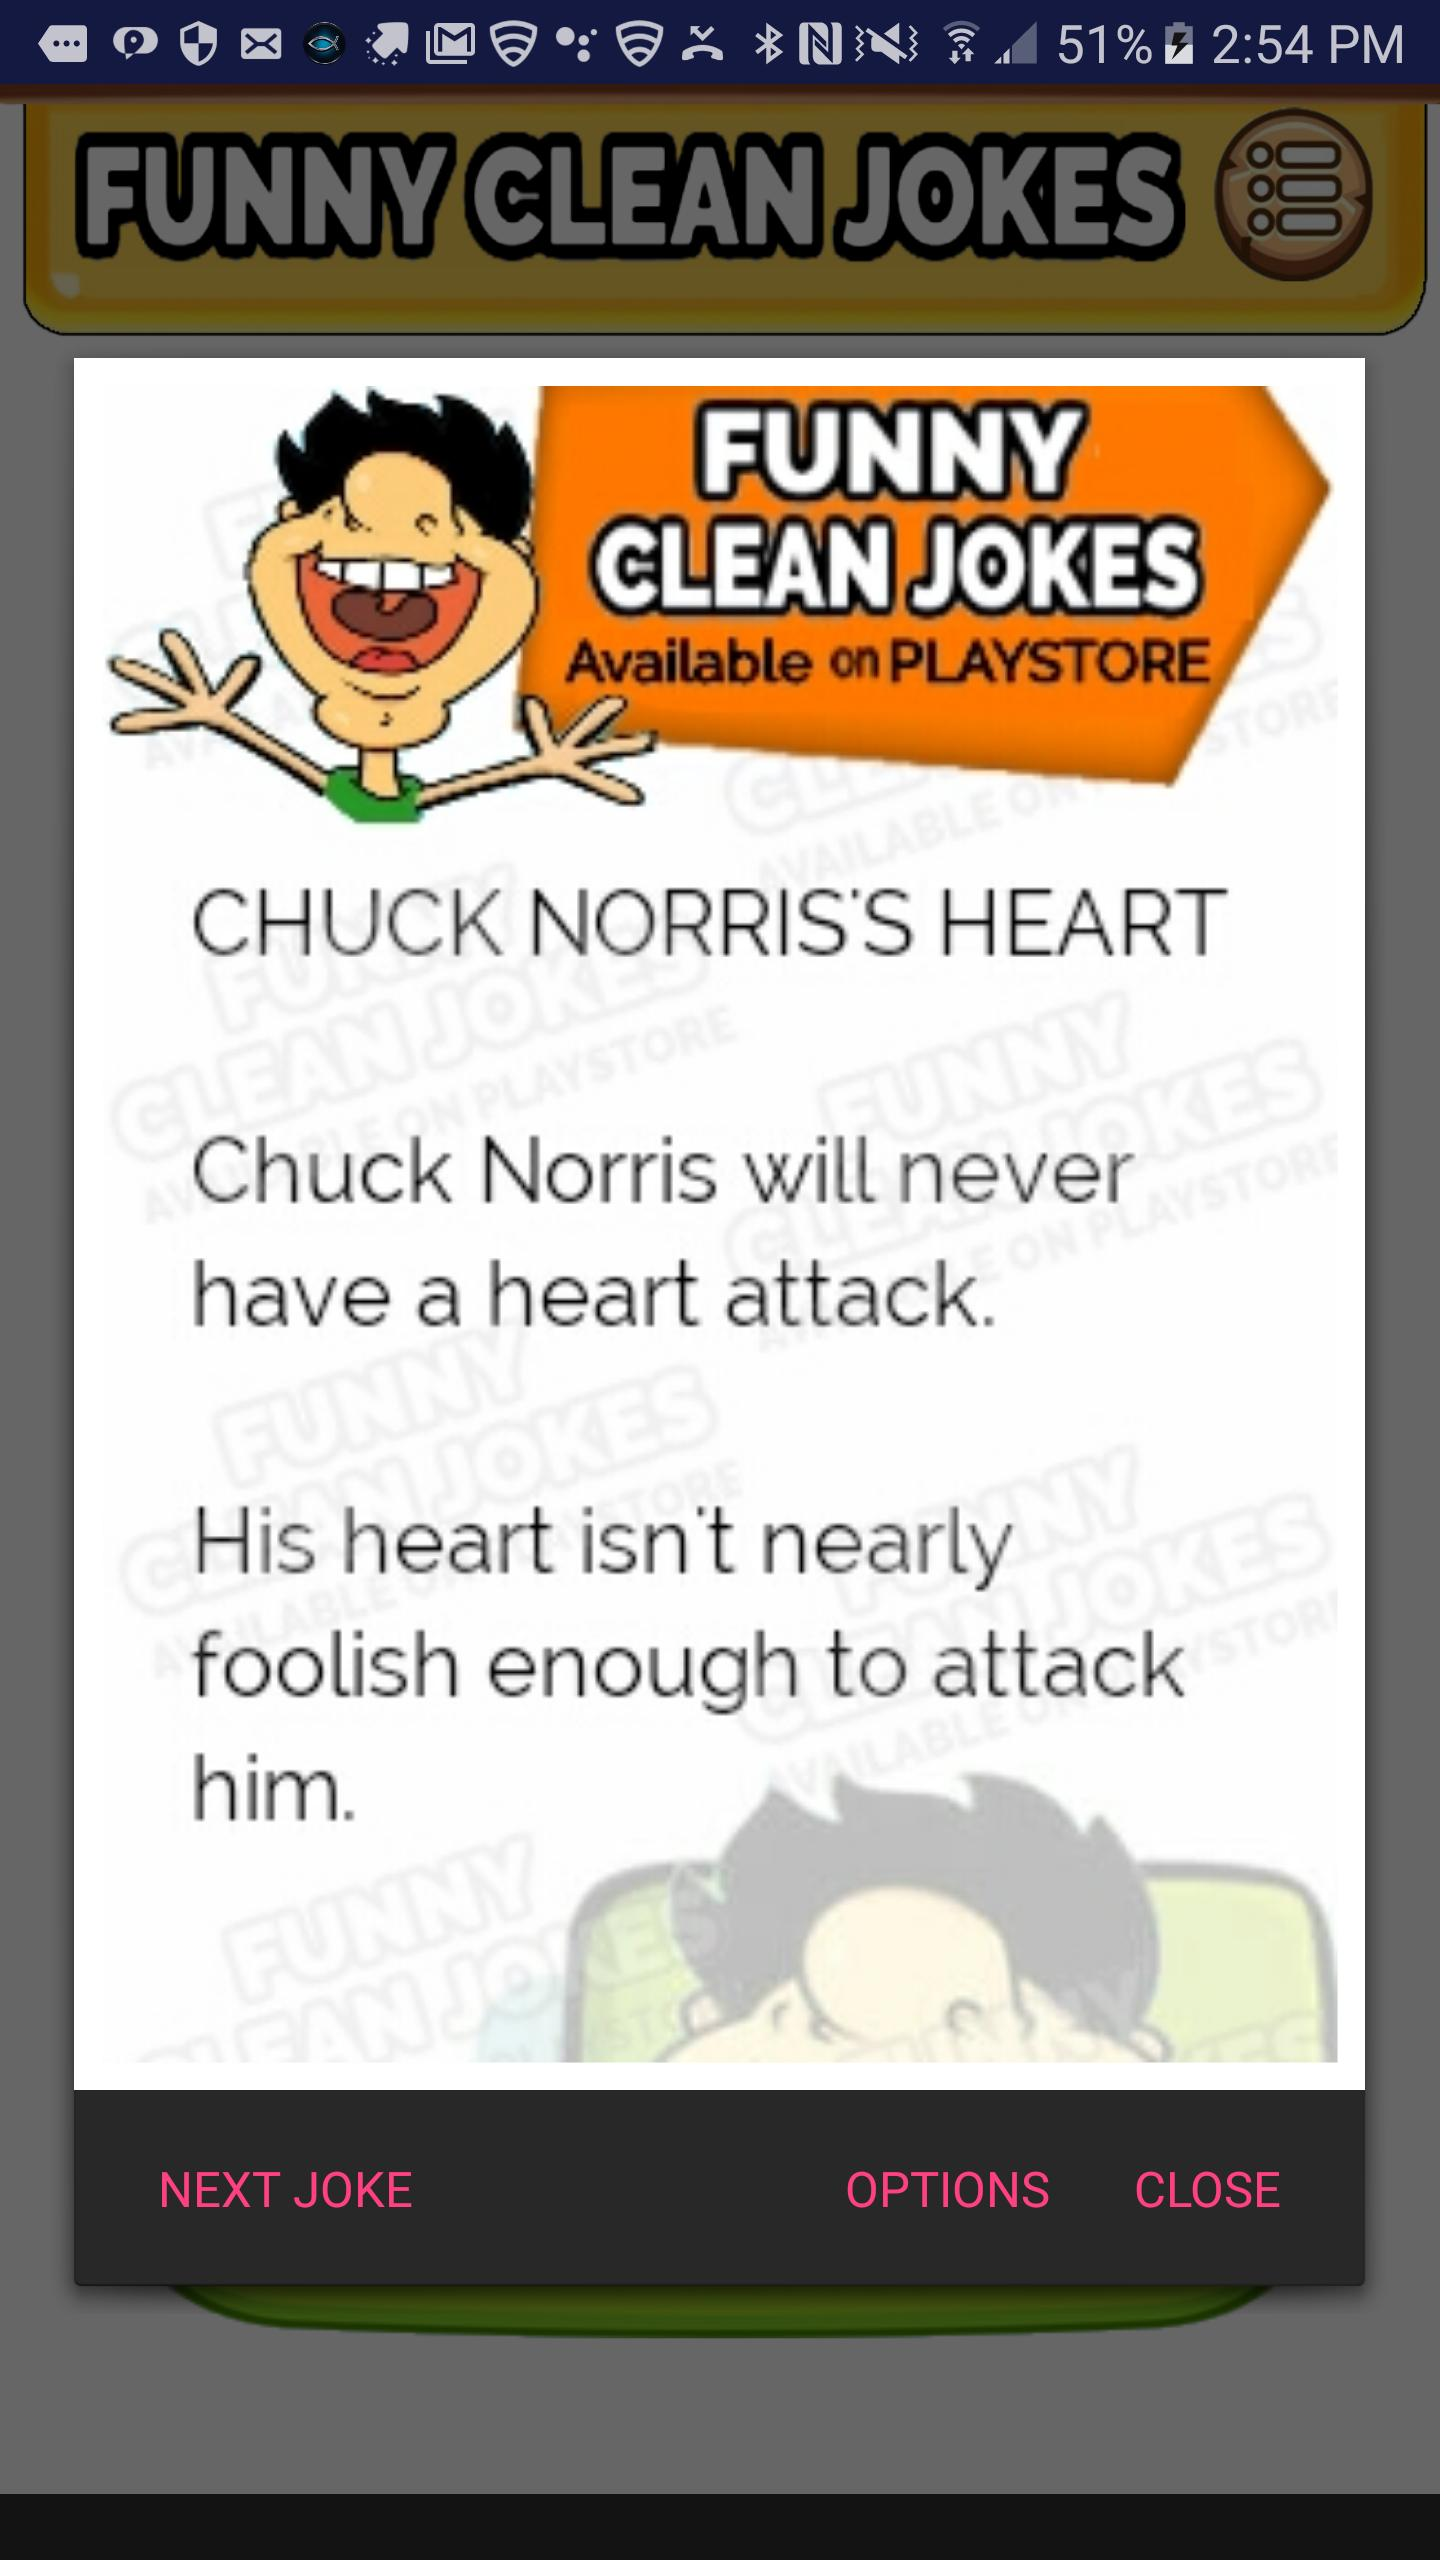 YOUKS Funny Clean Jokes for Android - APK Download